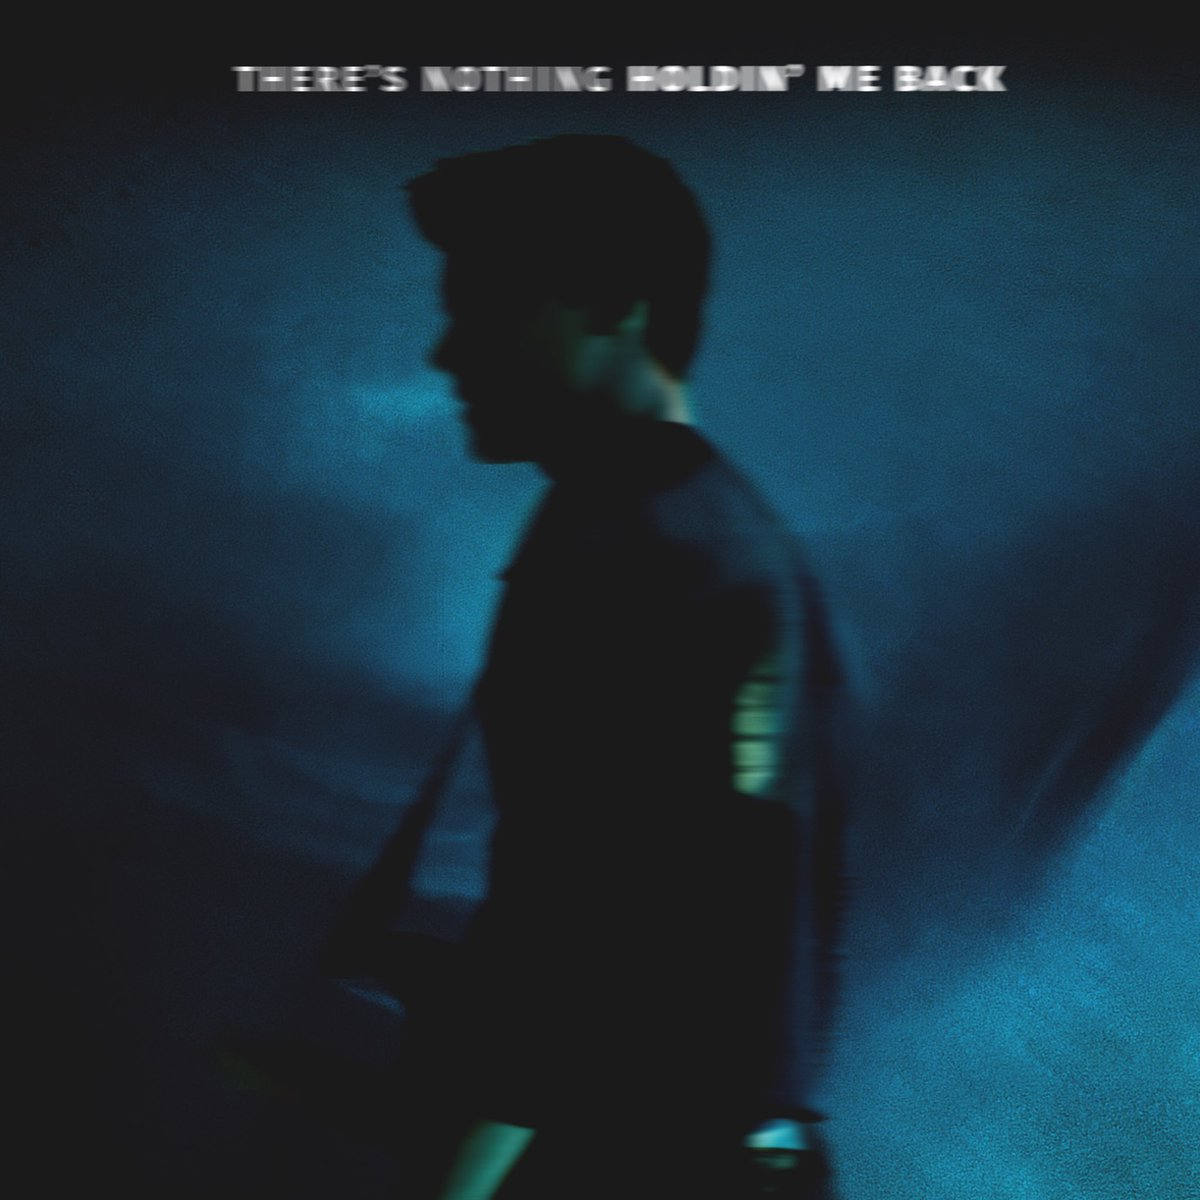 New single 'There's Nothing Holdin' Me Back' out Thursday (midnight tomorrow night)! #HoldinMeBack